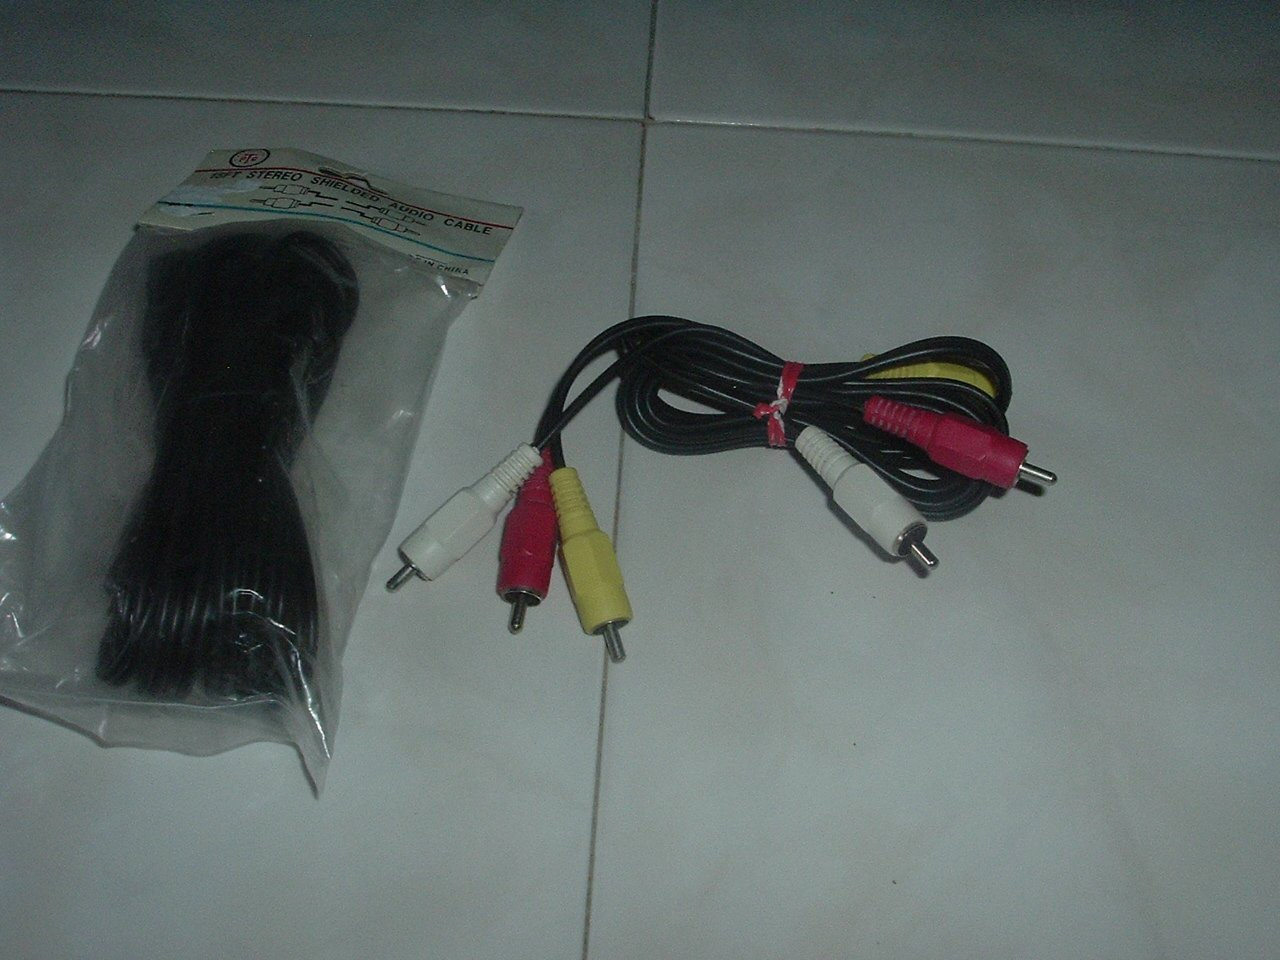 Standard Red, yellow & white RCA Patch Cords - 6 Feet